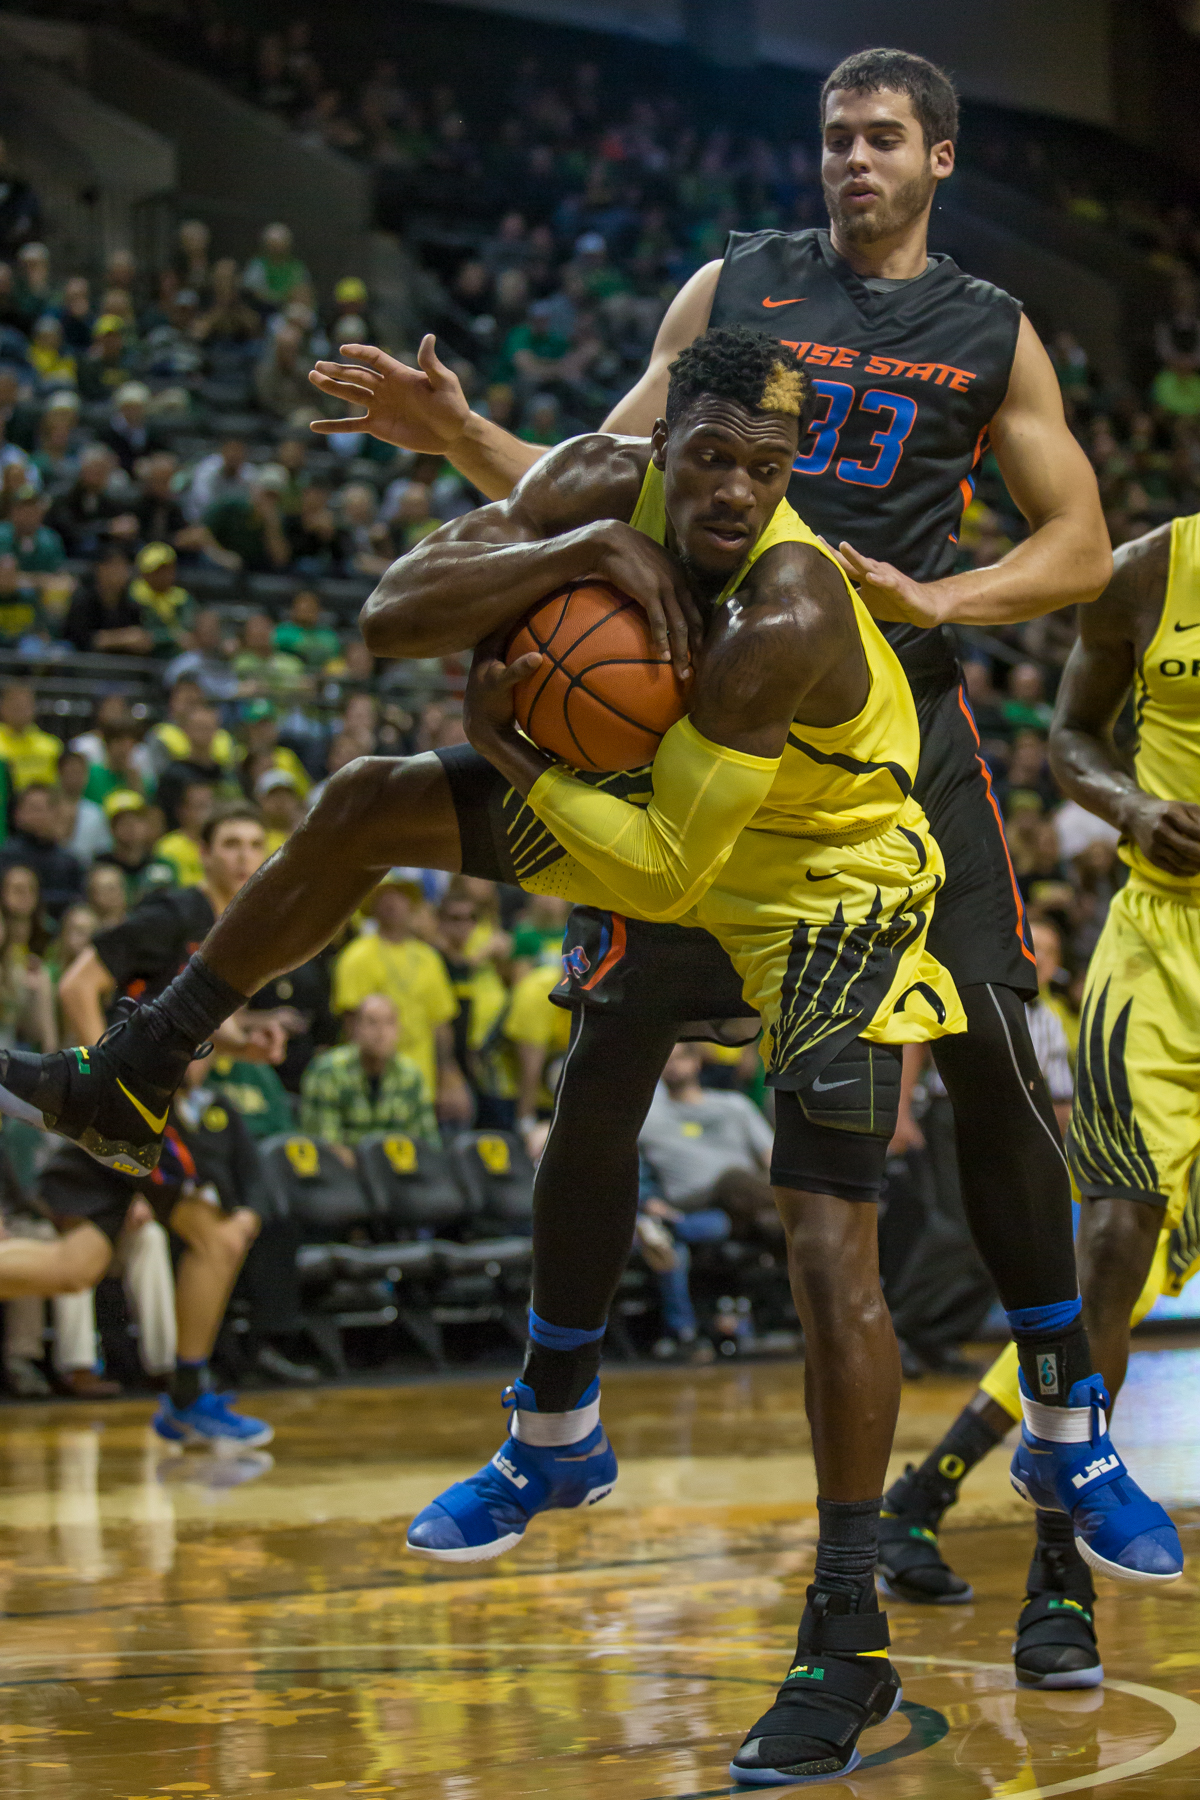 Oregon guard Dylan Ennis (#31) rips a ball down from the rim in front of Boise State forward David Wacker (#33). After trailing for most of the game, the Oregon Ducks defeated the Boise State Broncos 68-63. Photo by Dillon Vibes